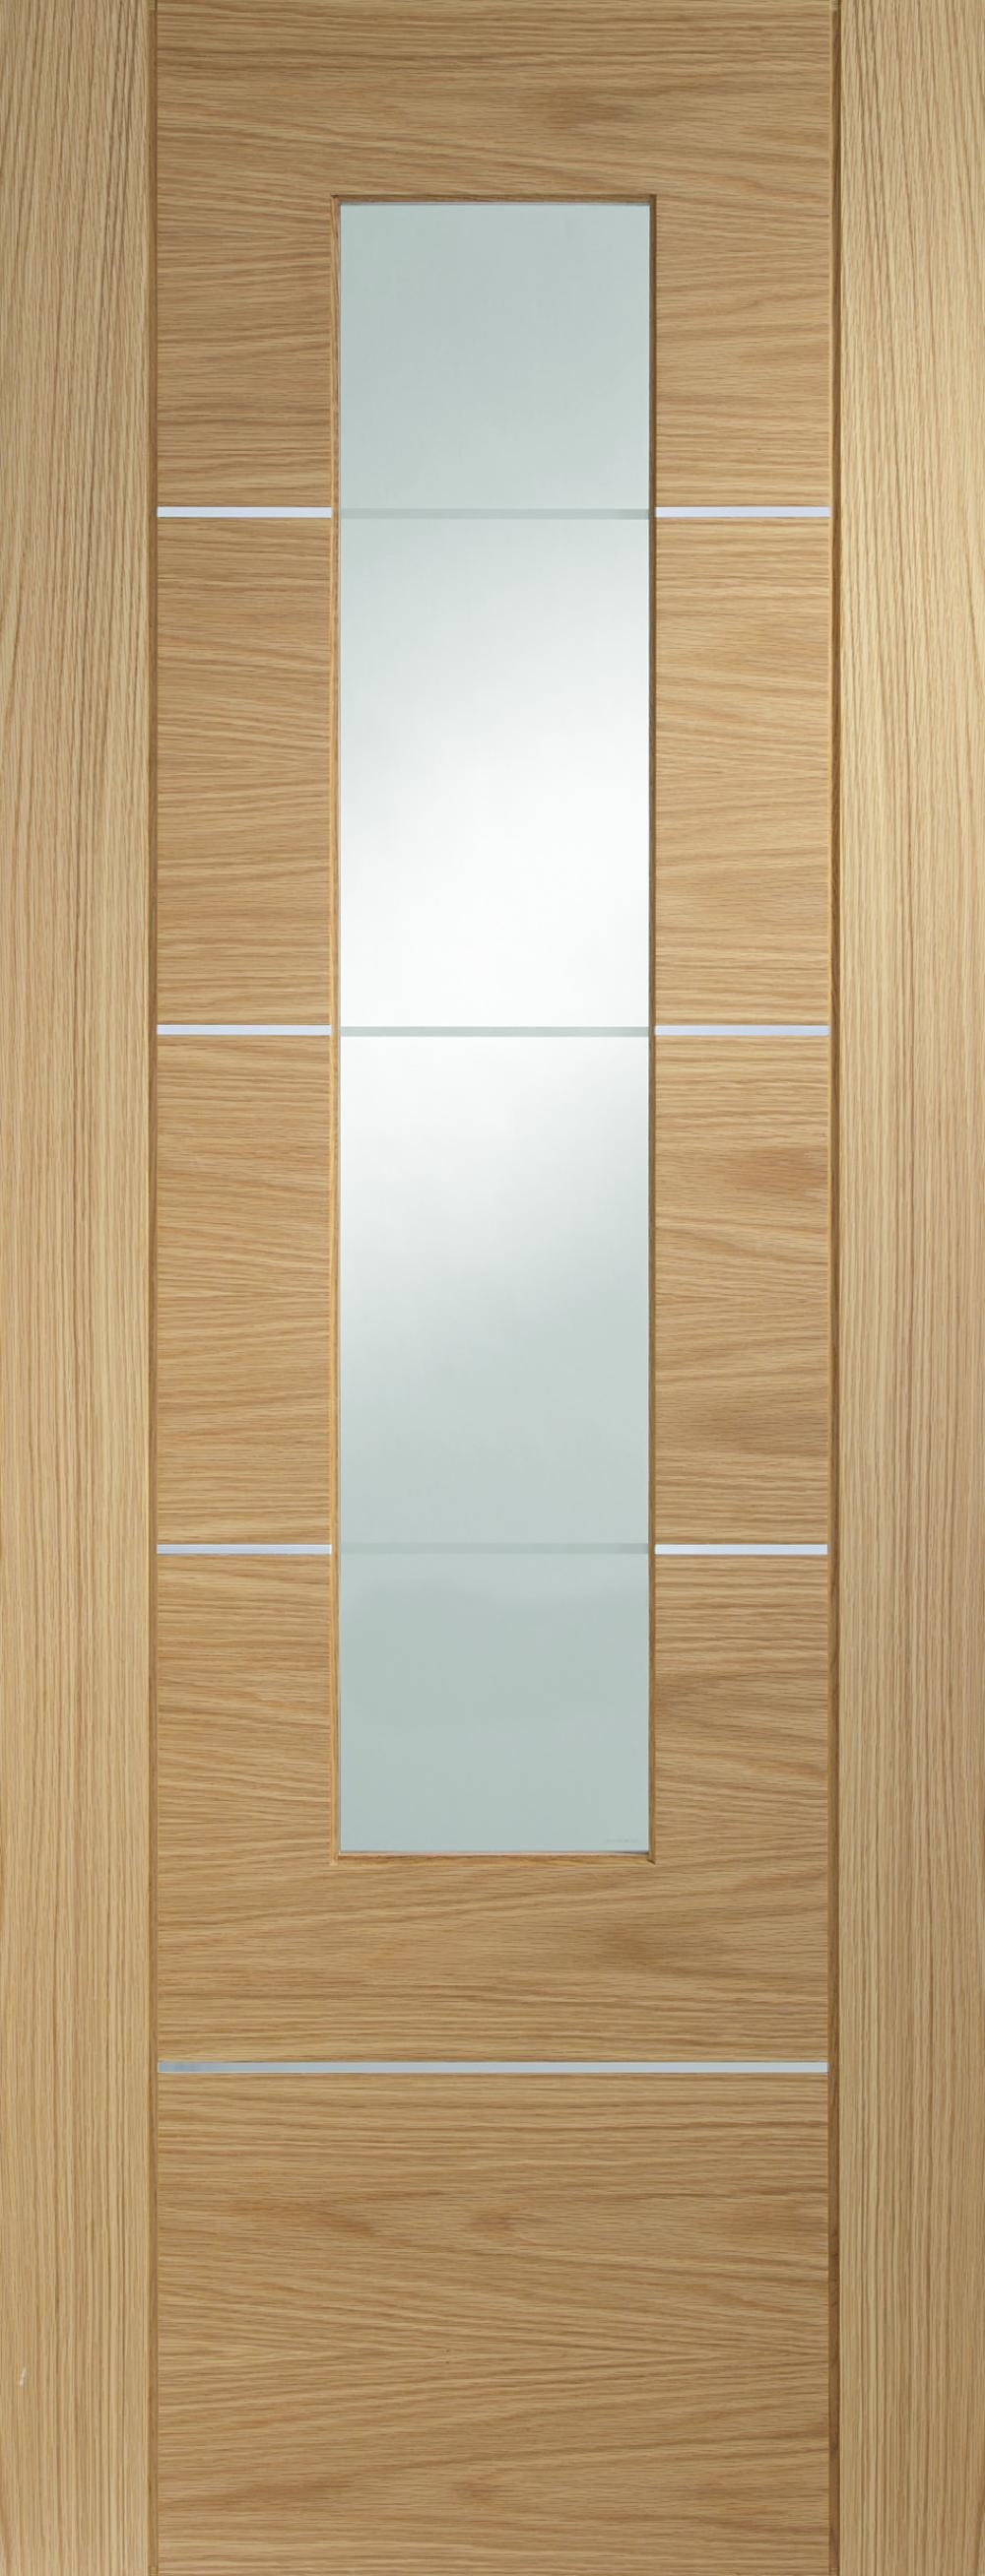 Portici Oak - PREFINISHED Clear Glass:  Image